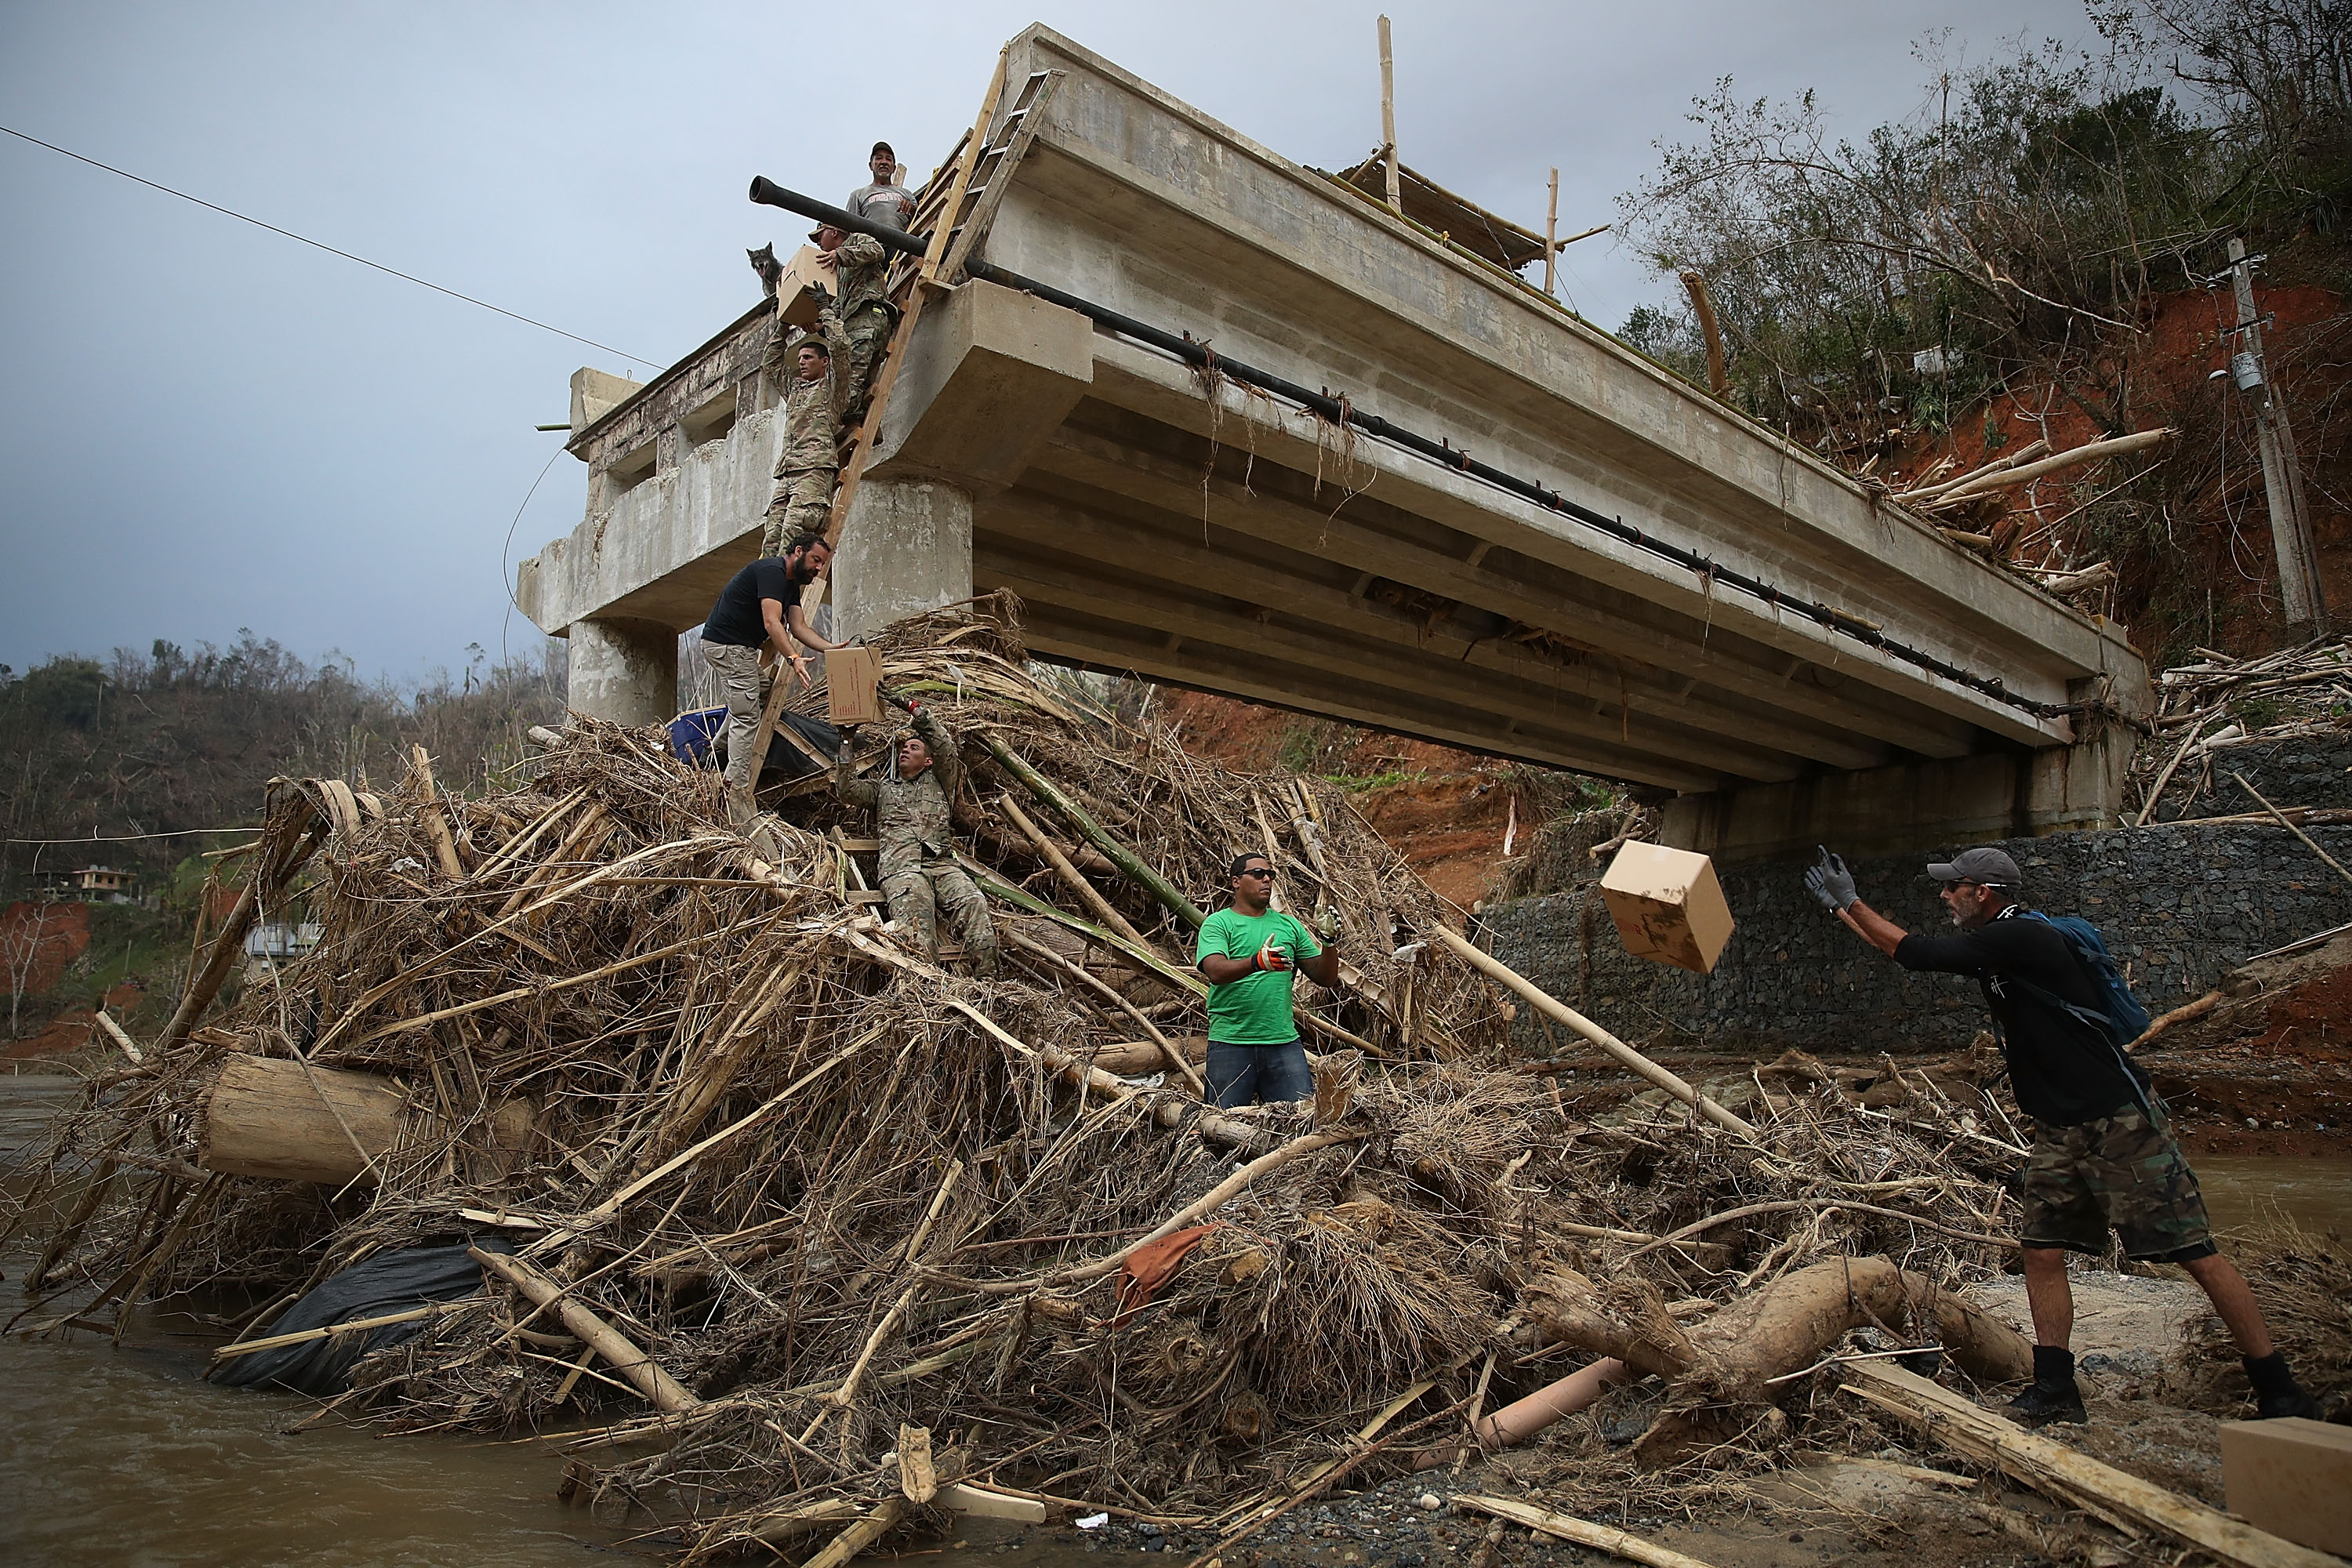 Congress Must Help Puerto Rico Recover After Hurricane Maria